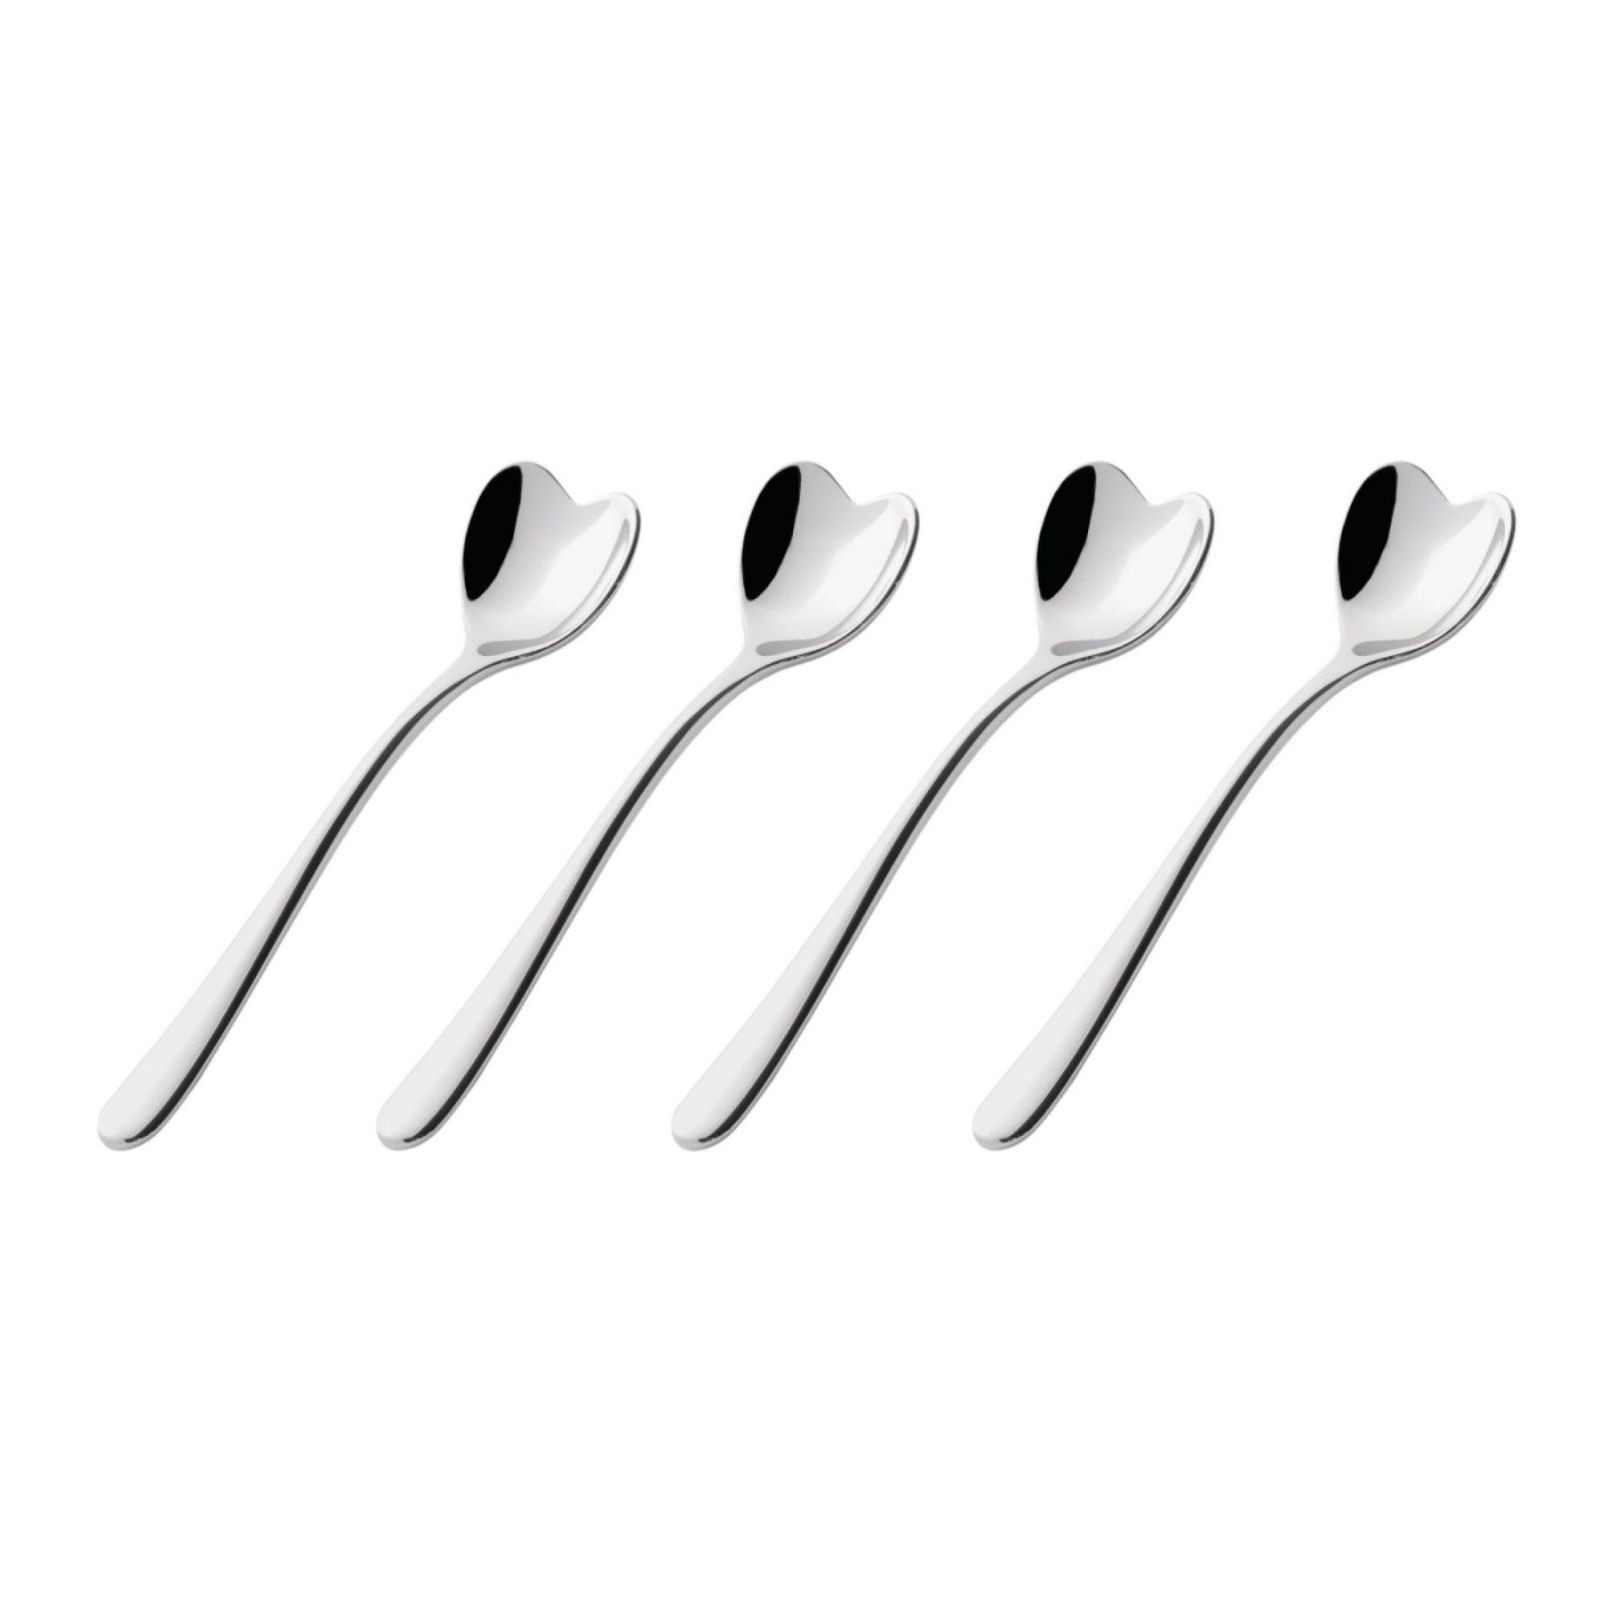 Set of 4 Heart Shaped Coffee Spoons by Miriam Mirri (Stainless Steel) - Alessi